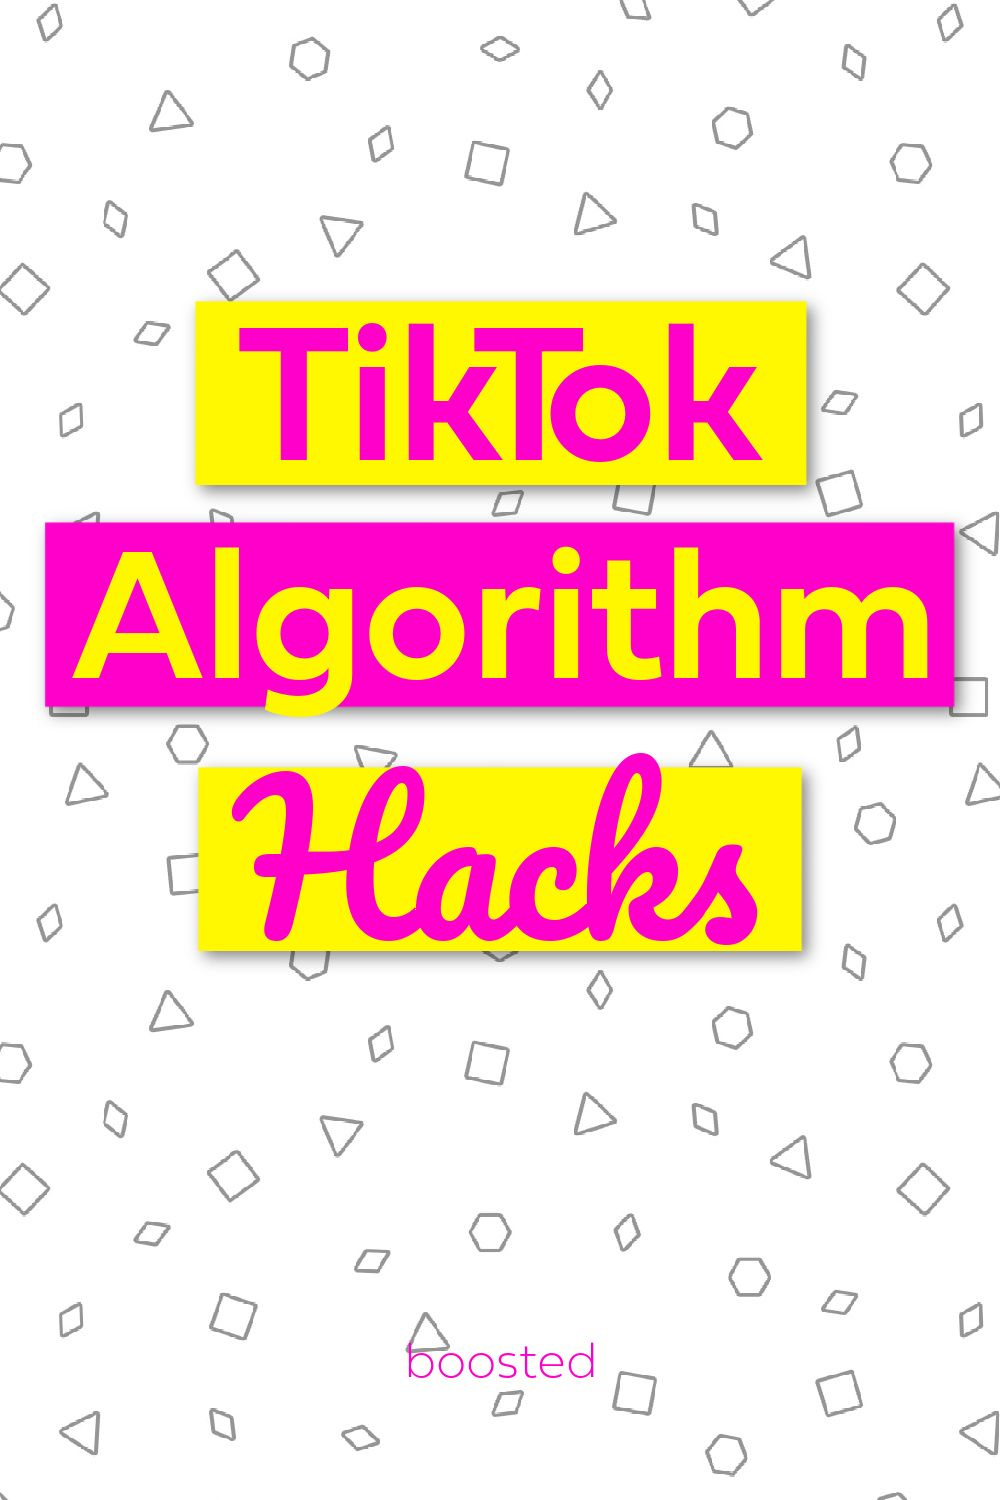 7 Tips For Small Businesses To Hack The Tiktok Algorithm Boosted Algorithm Marketing Program Video Marketing